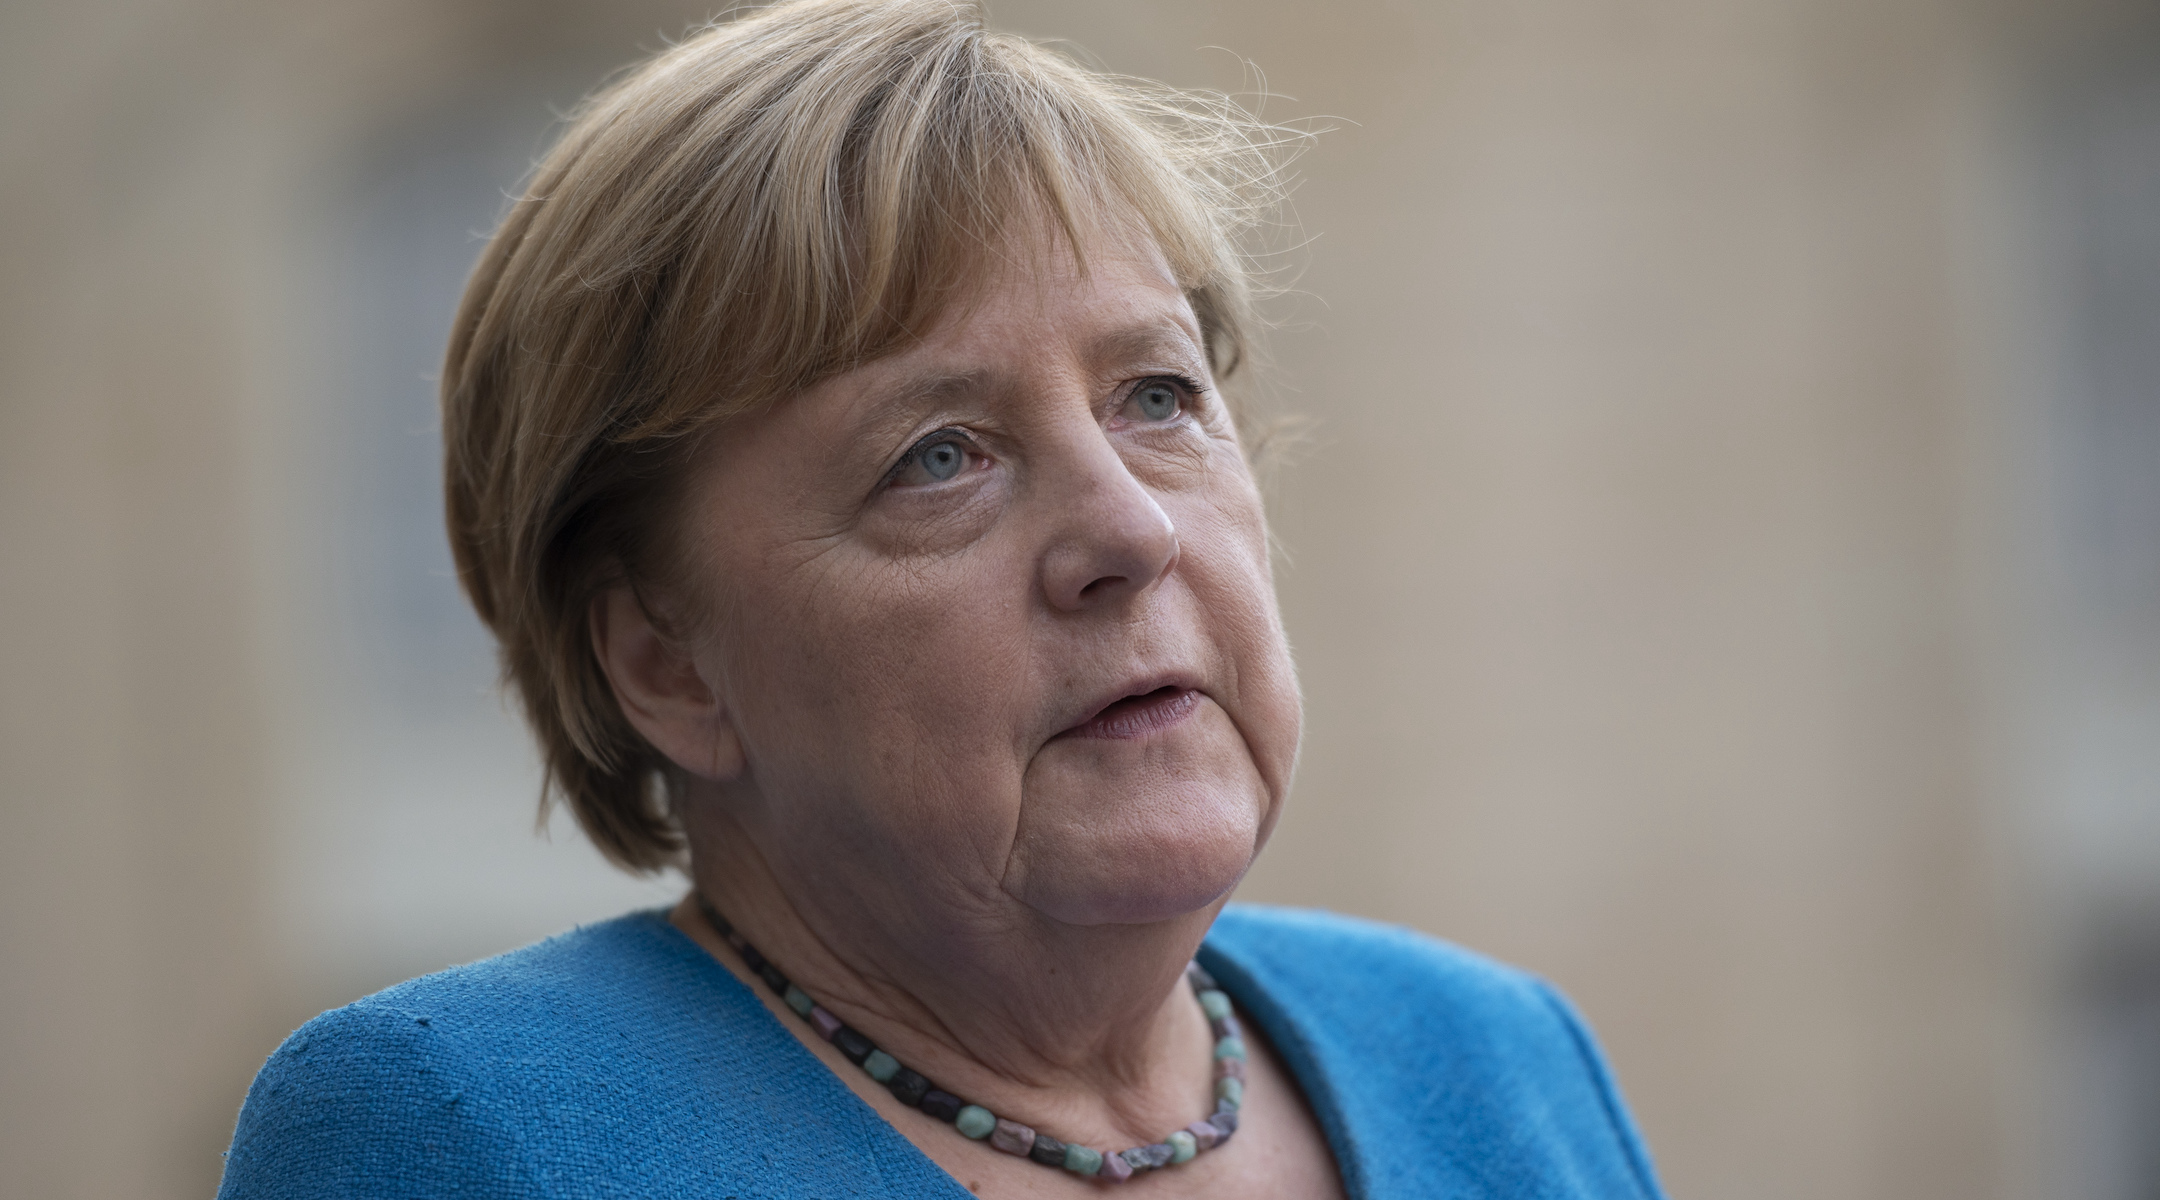 'A steadfast ally': Angela Merkel's departure from politics is a sad moment for many German Jews